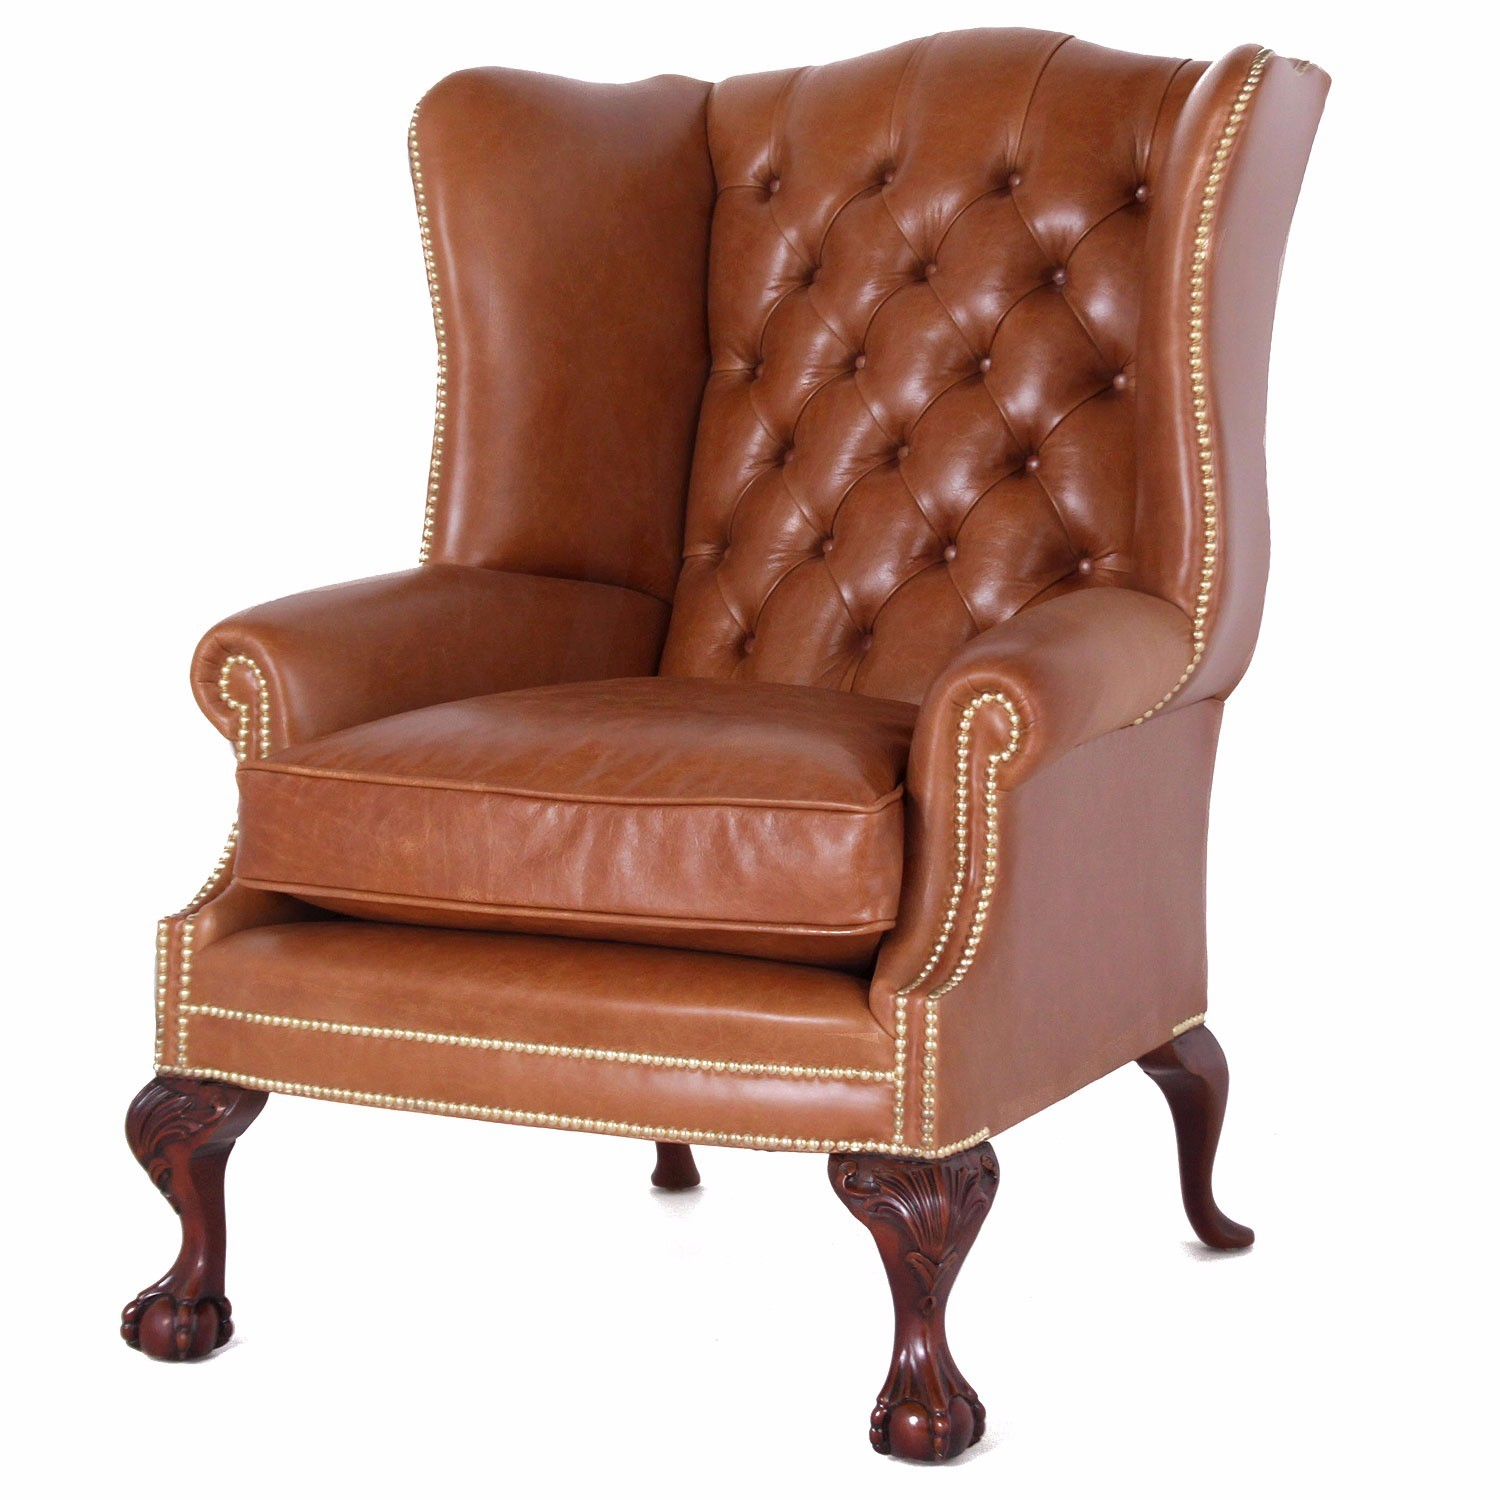 Coleridge buttoned wing chair in tan leather